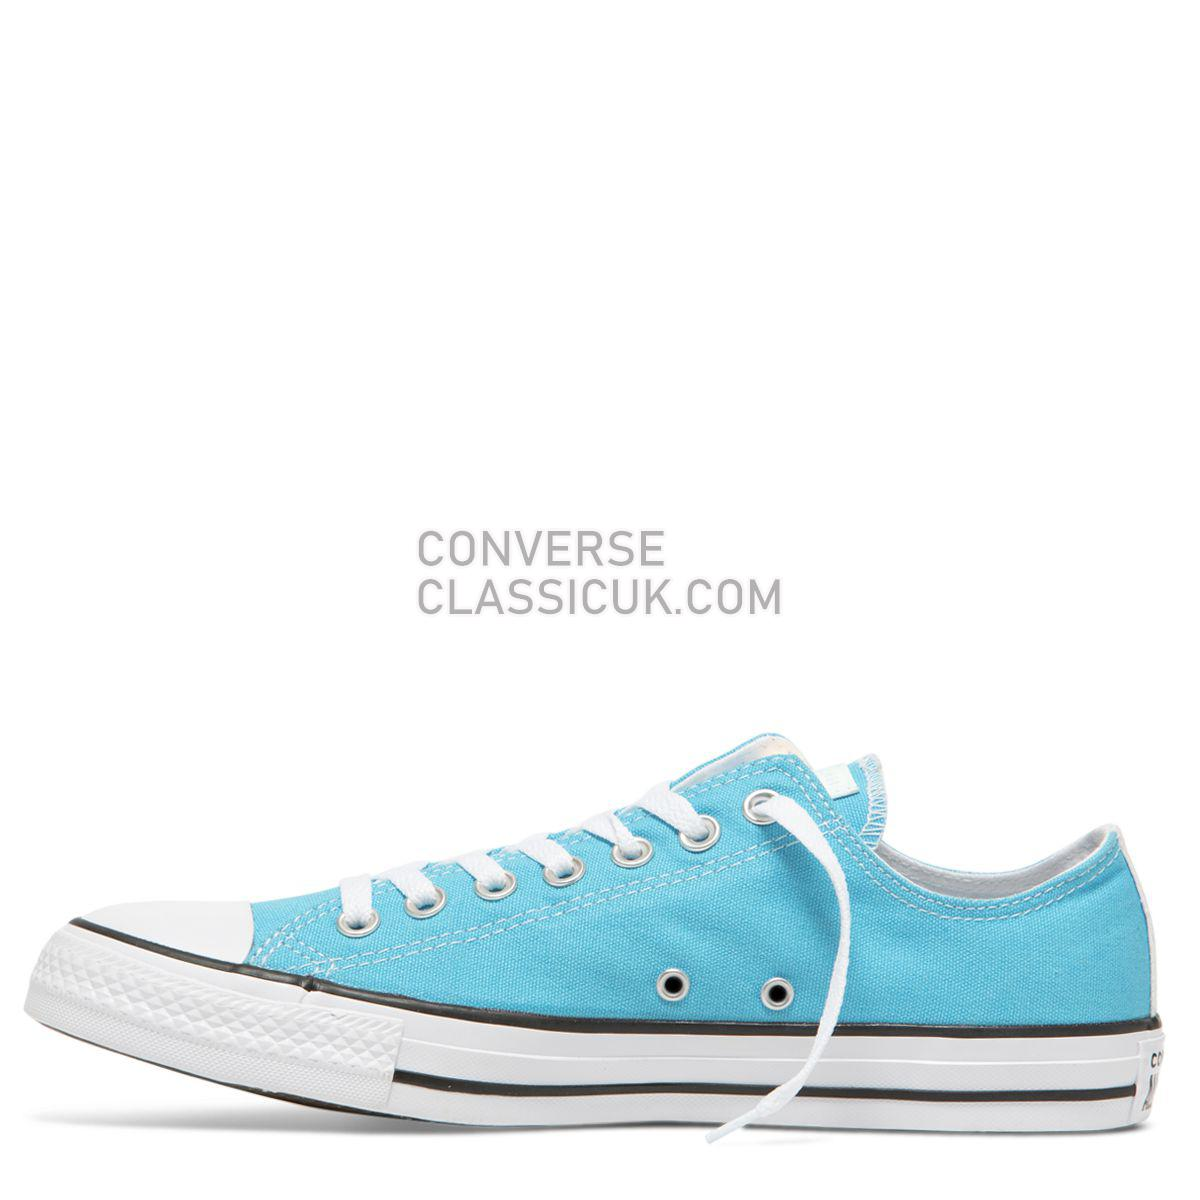 Converse Chuck Taylor All Star Impress Low Top Gnarly Blue/Iridescent Mens Womens Unisex 163793 Gnarly Blue/Iridescent/White Shoes